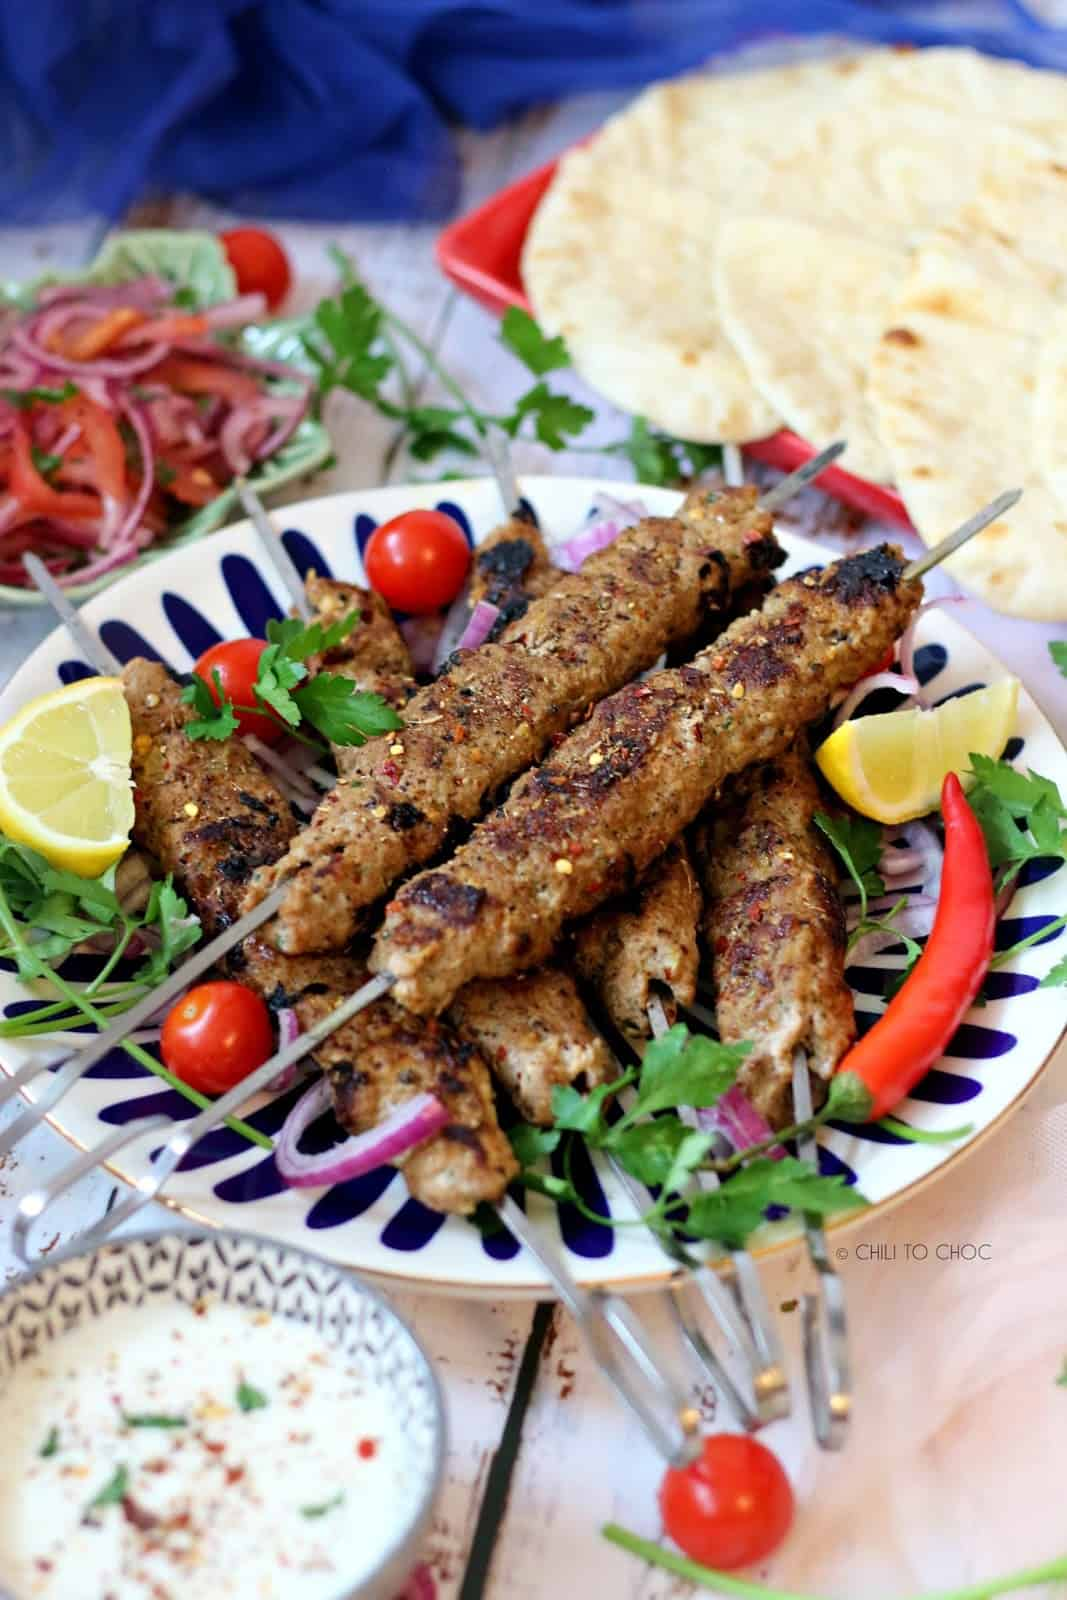 Turkish Lamb Adana Kebab Chili To Choc